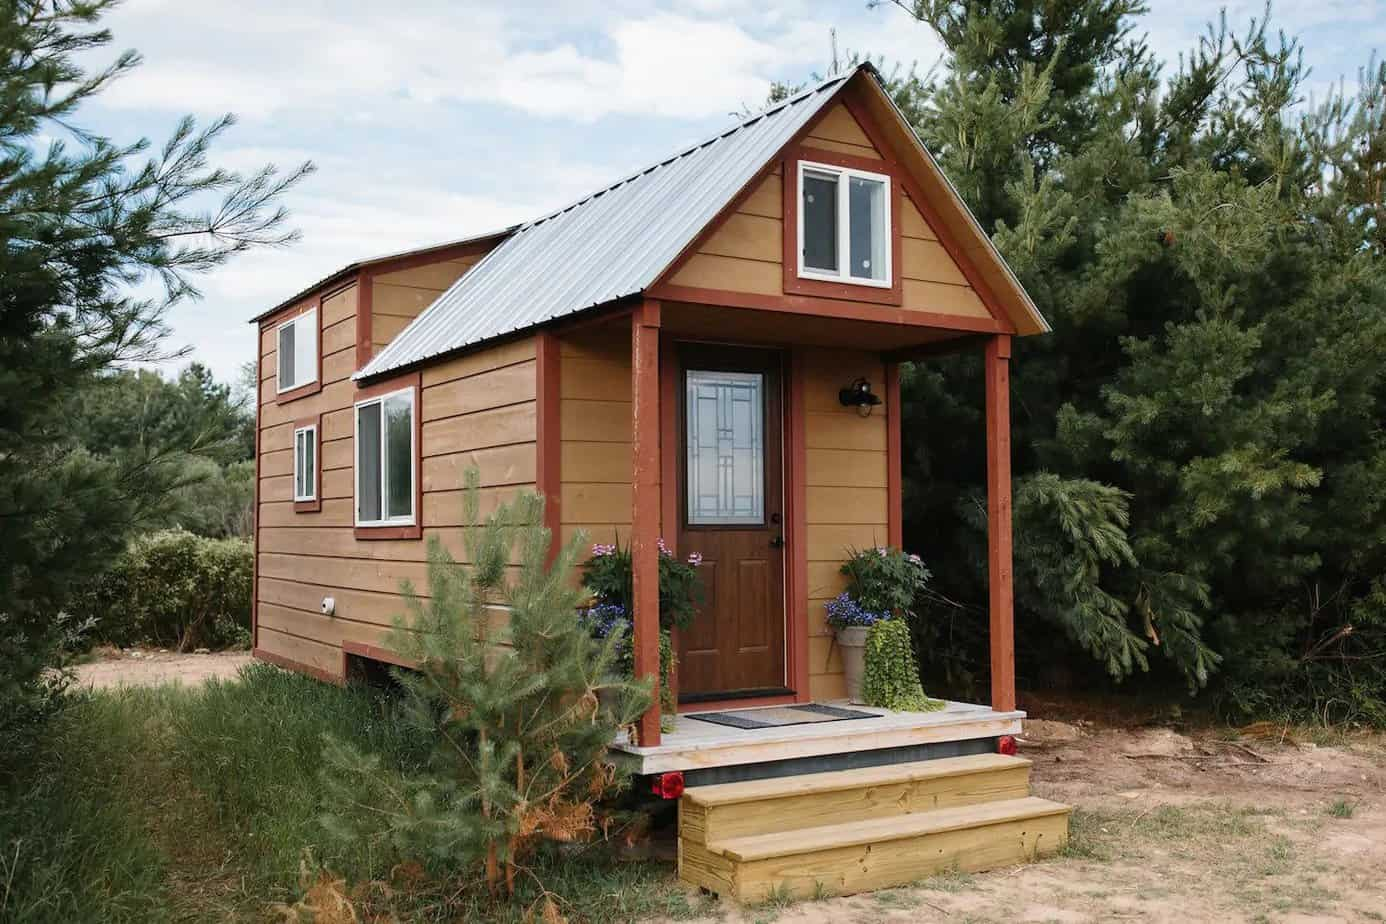 A tiny house in Petoskey